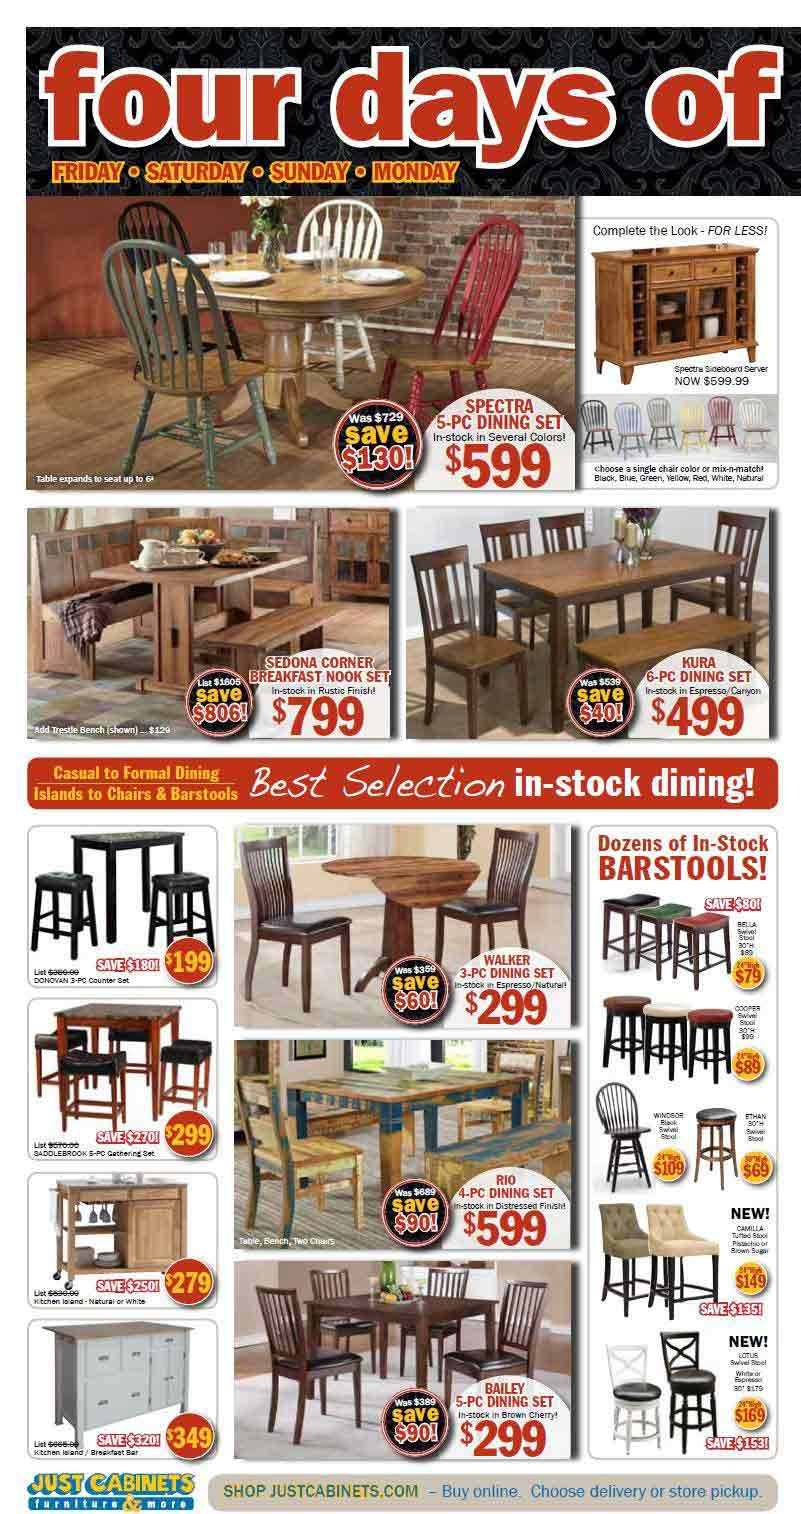 Just Cabinets Furniture Black Friday 2013 Ad Find The Best Just Cabinets Furniture Black